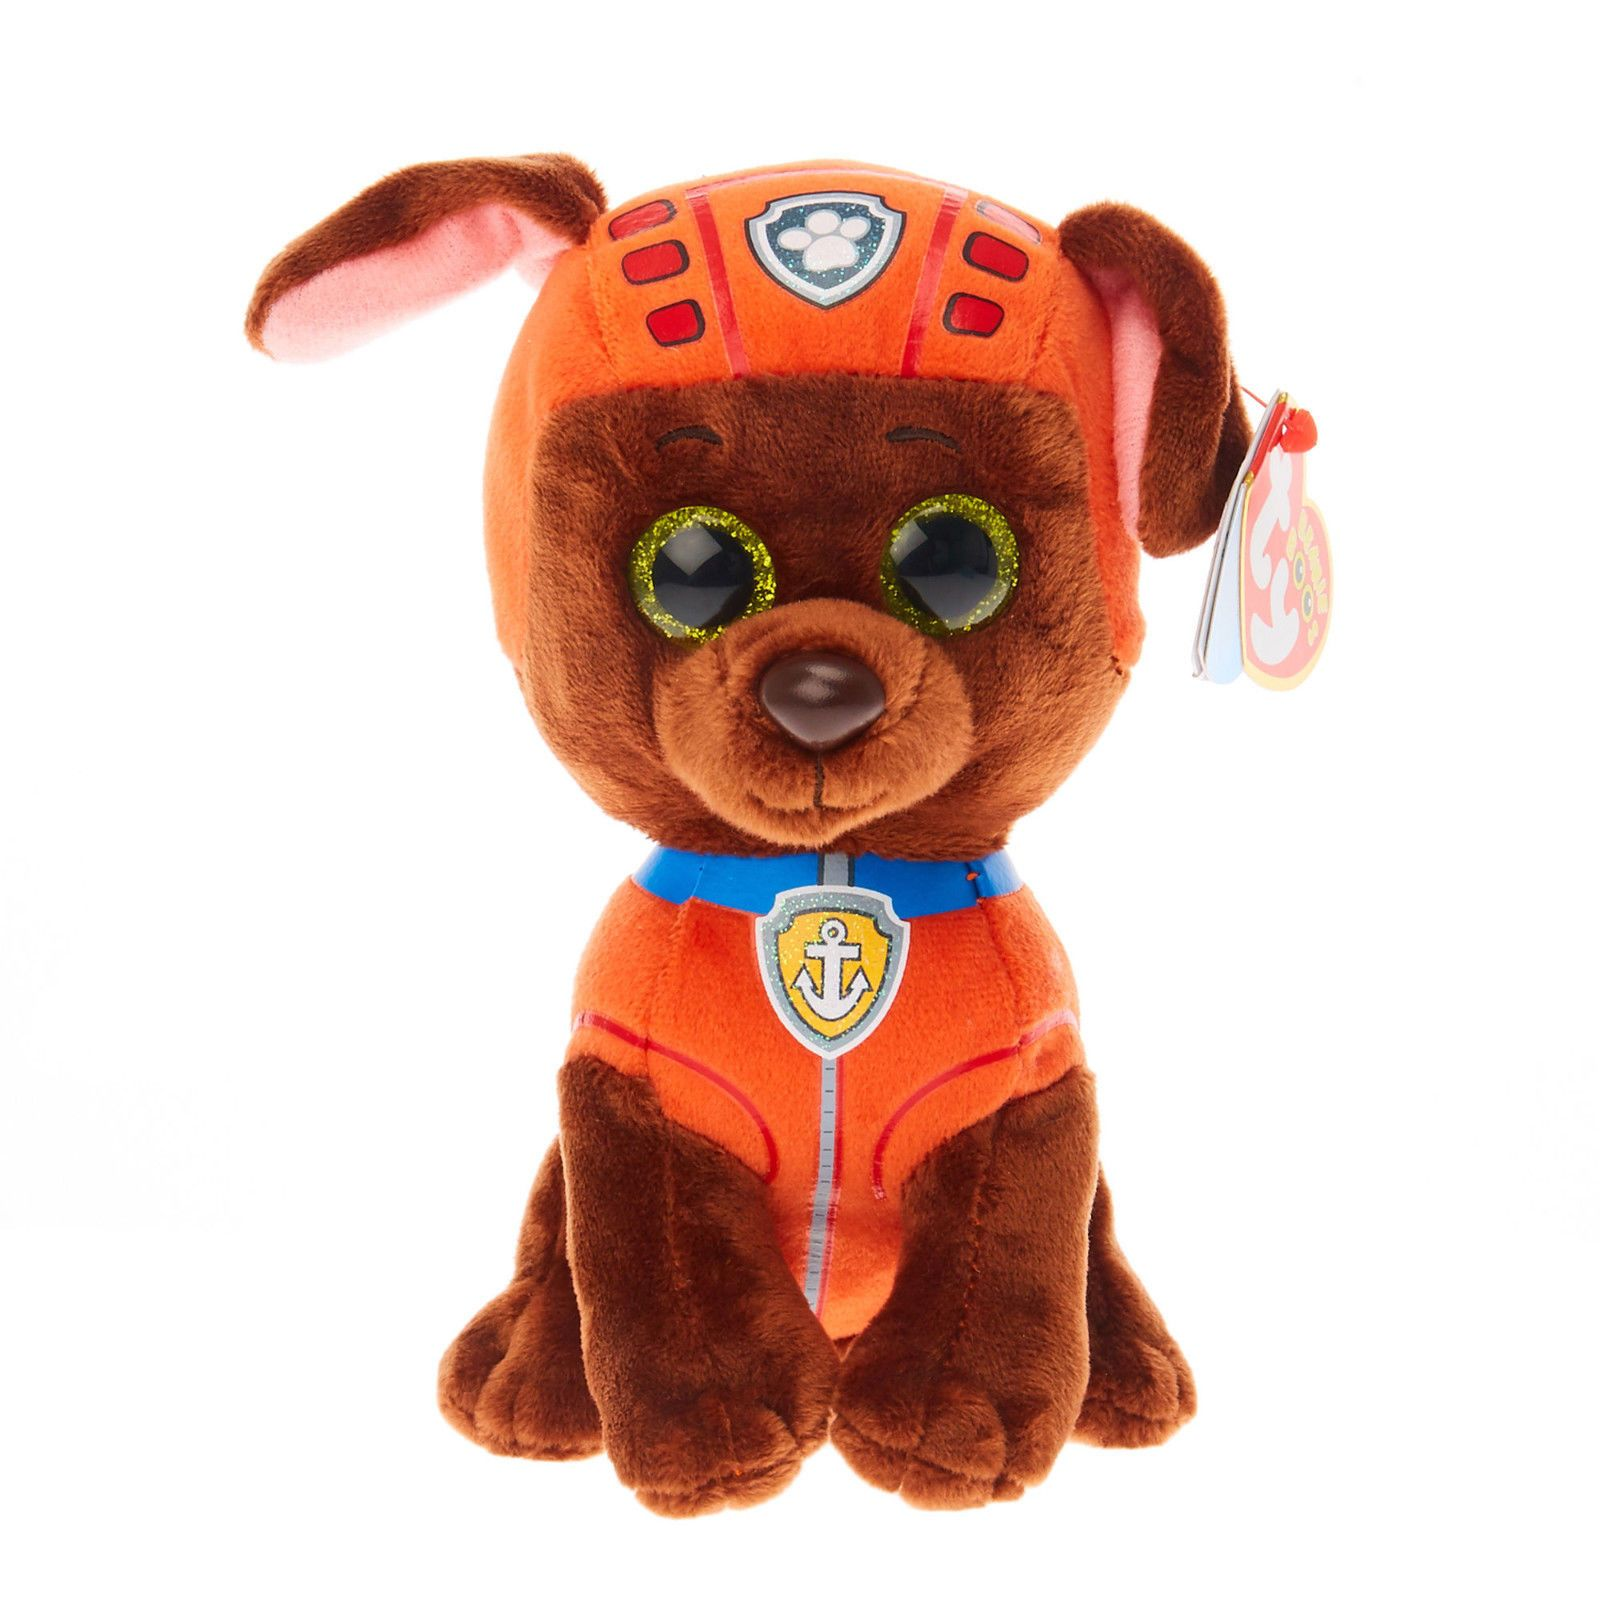 "TY Beanie Boos 6/"" Paw Patrol EVEREST Husky Dog Plush Stuffed Animal MWMT/'s Tags"